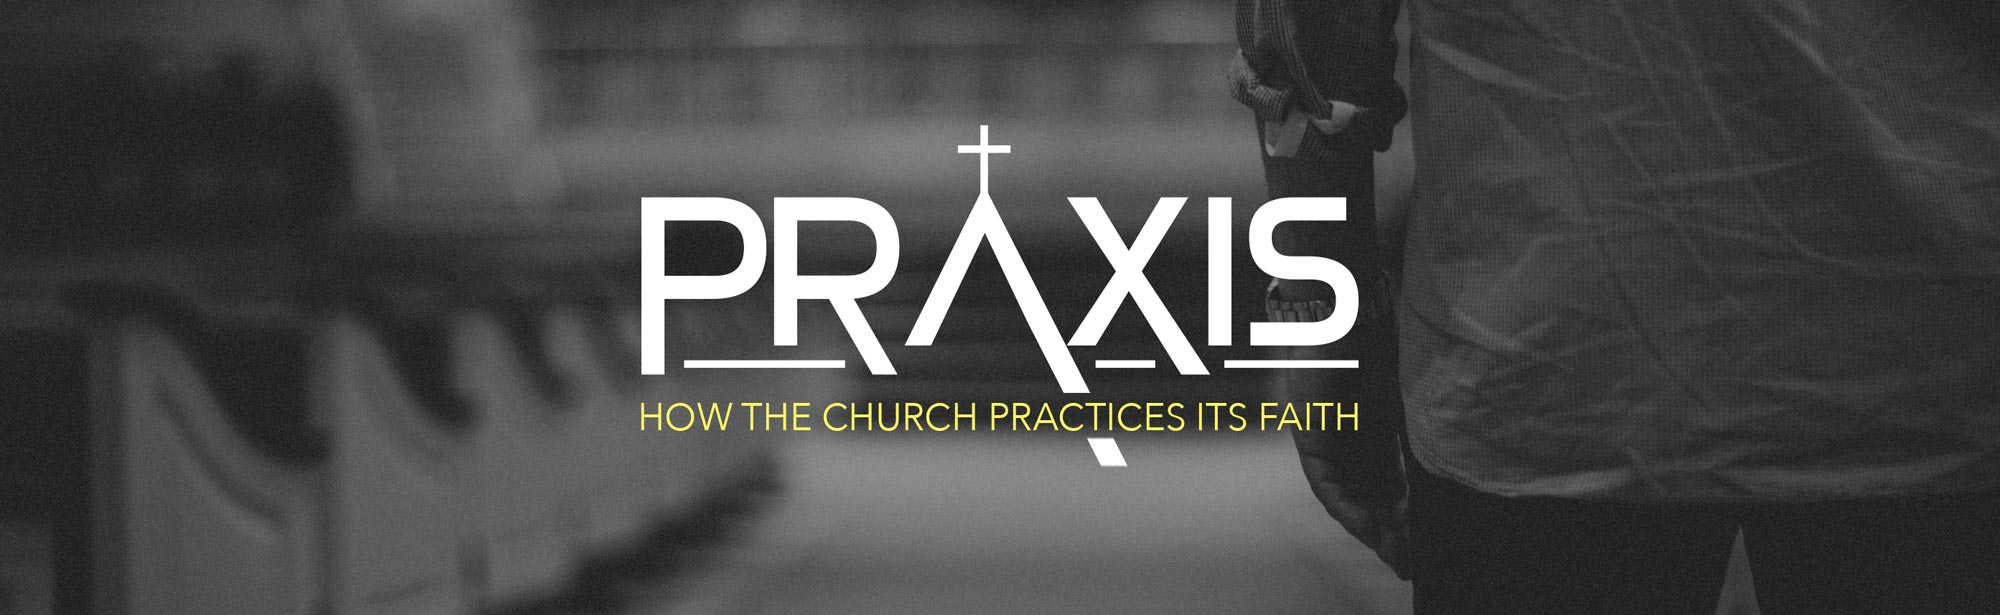 Praxis: How the Church Practices It's Faith - Sermon Series - Grace Community Church